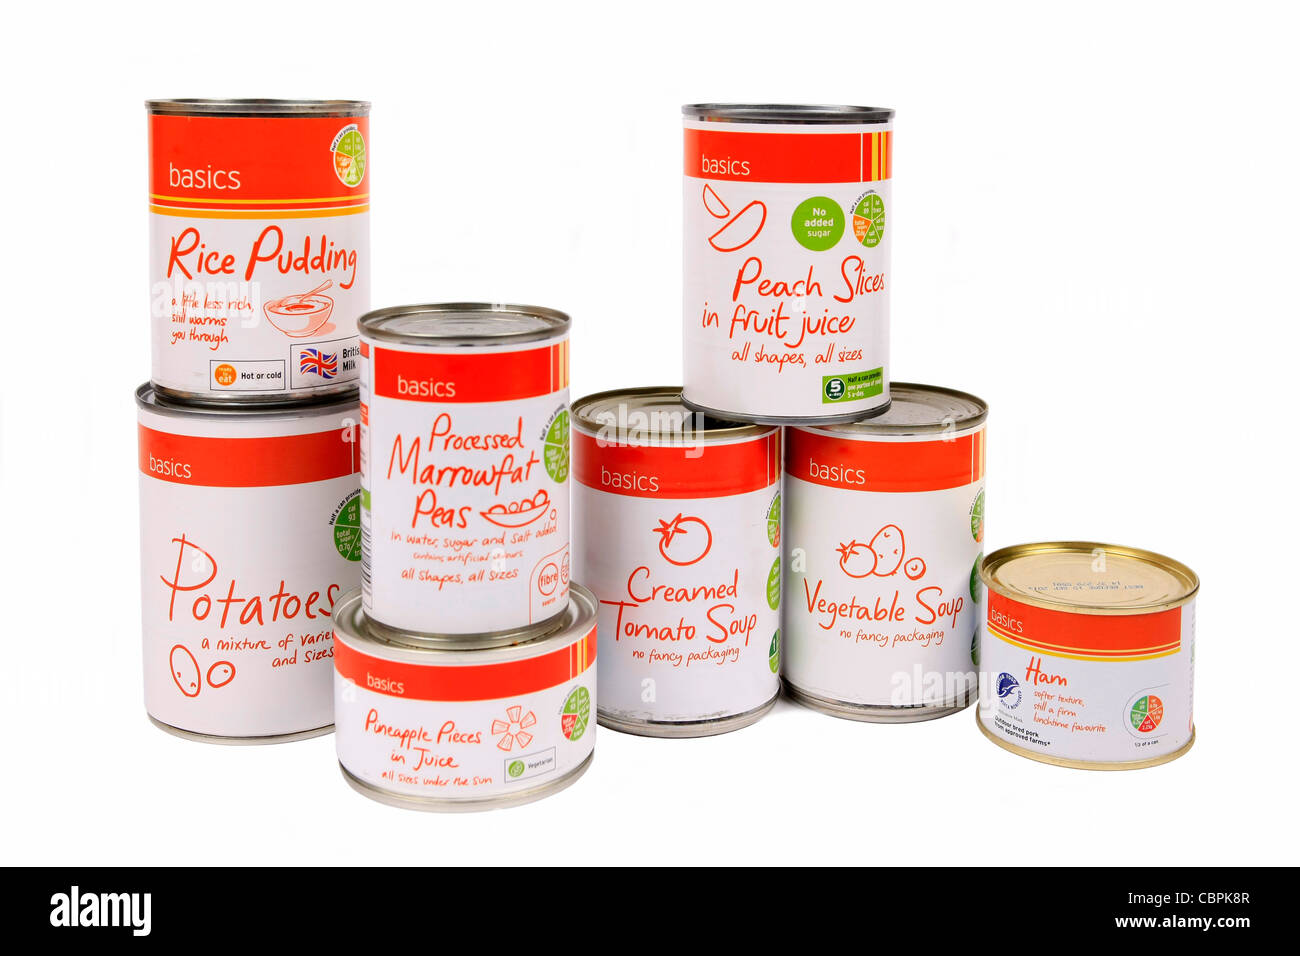 Cheap Basic canned foods on offer at a supermarket for families on low incomes - Stock Image